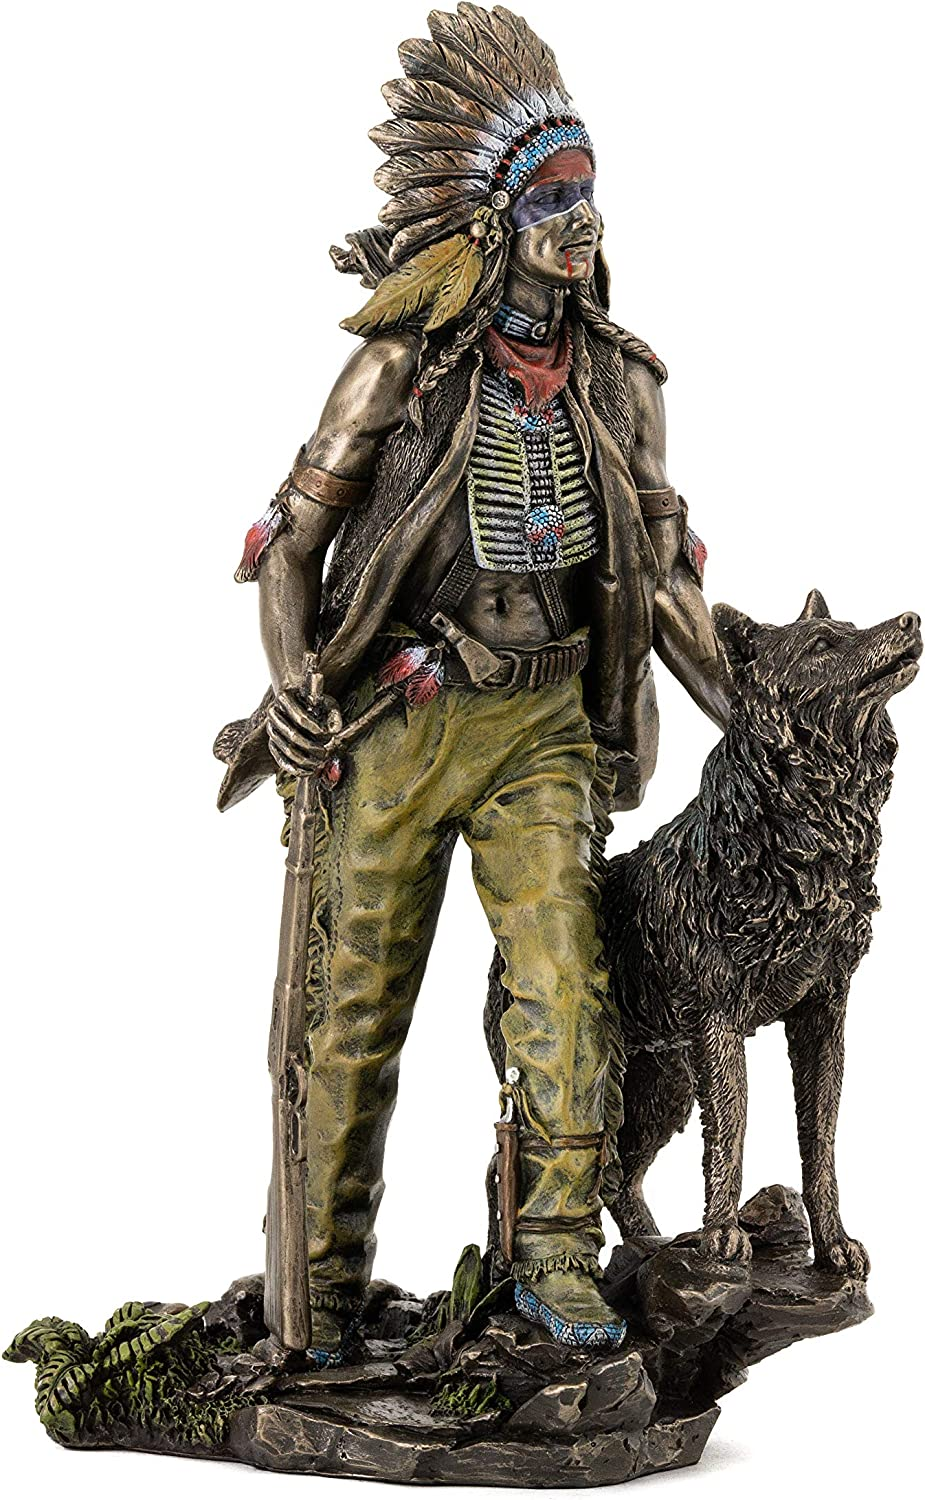 Top Collection Plains Indian Statue - Native American with Hunting Companion Sculpture in Cold-Cast Bronze with Color Accents - 11.5-Inch Collectible Indigenous Figurine